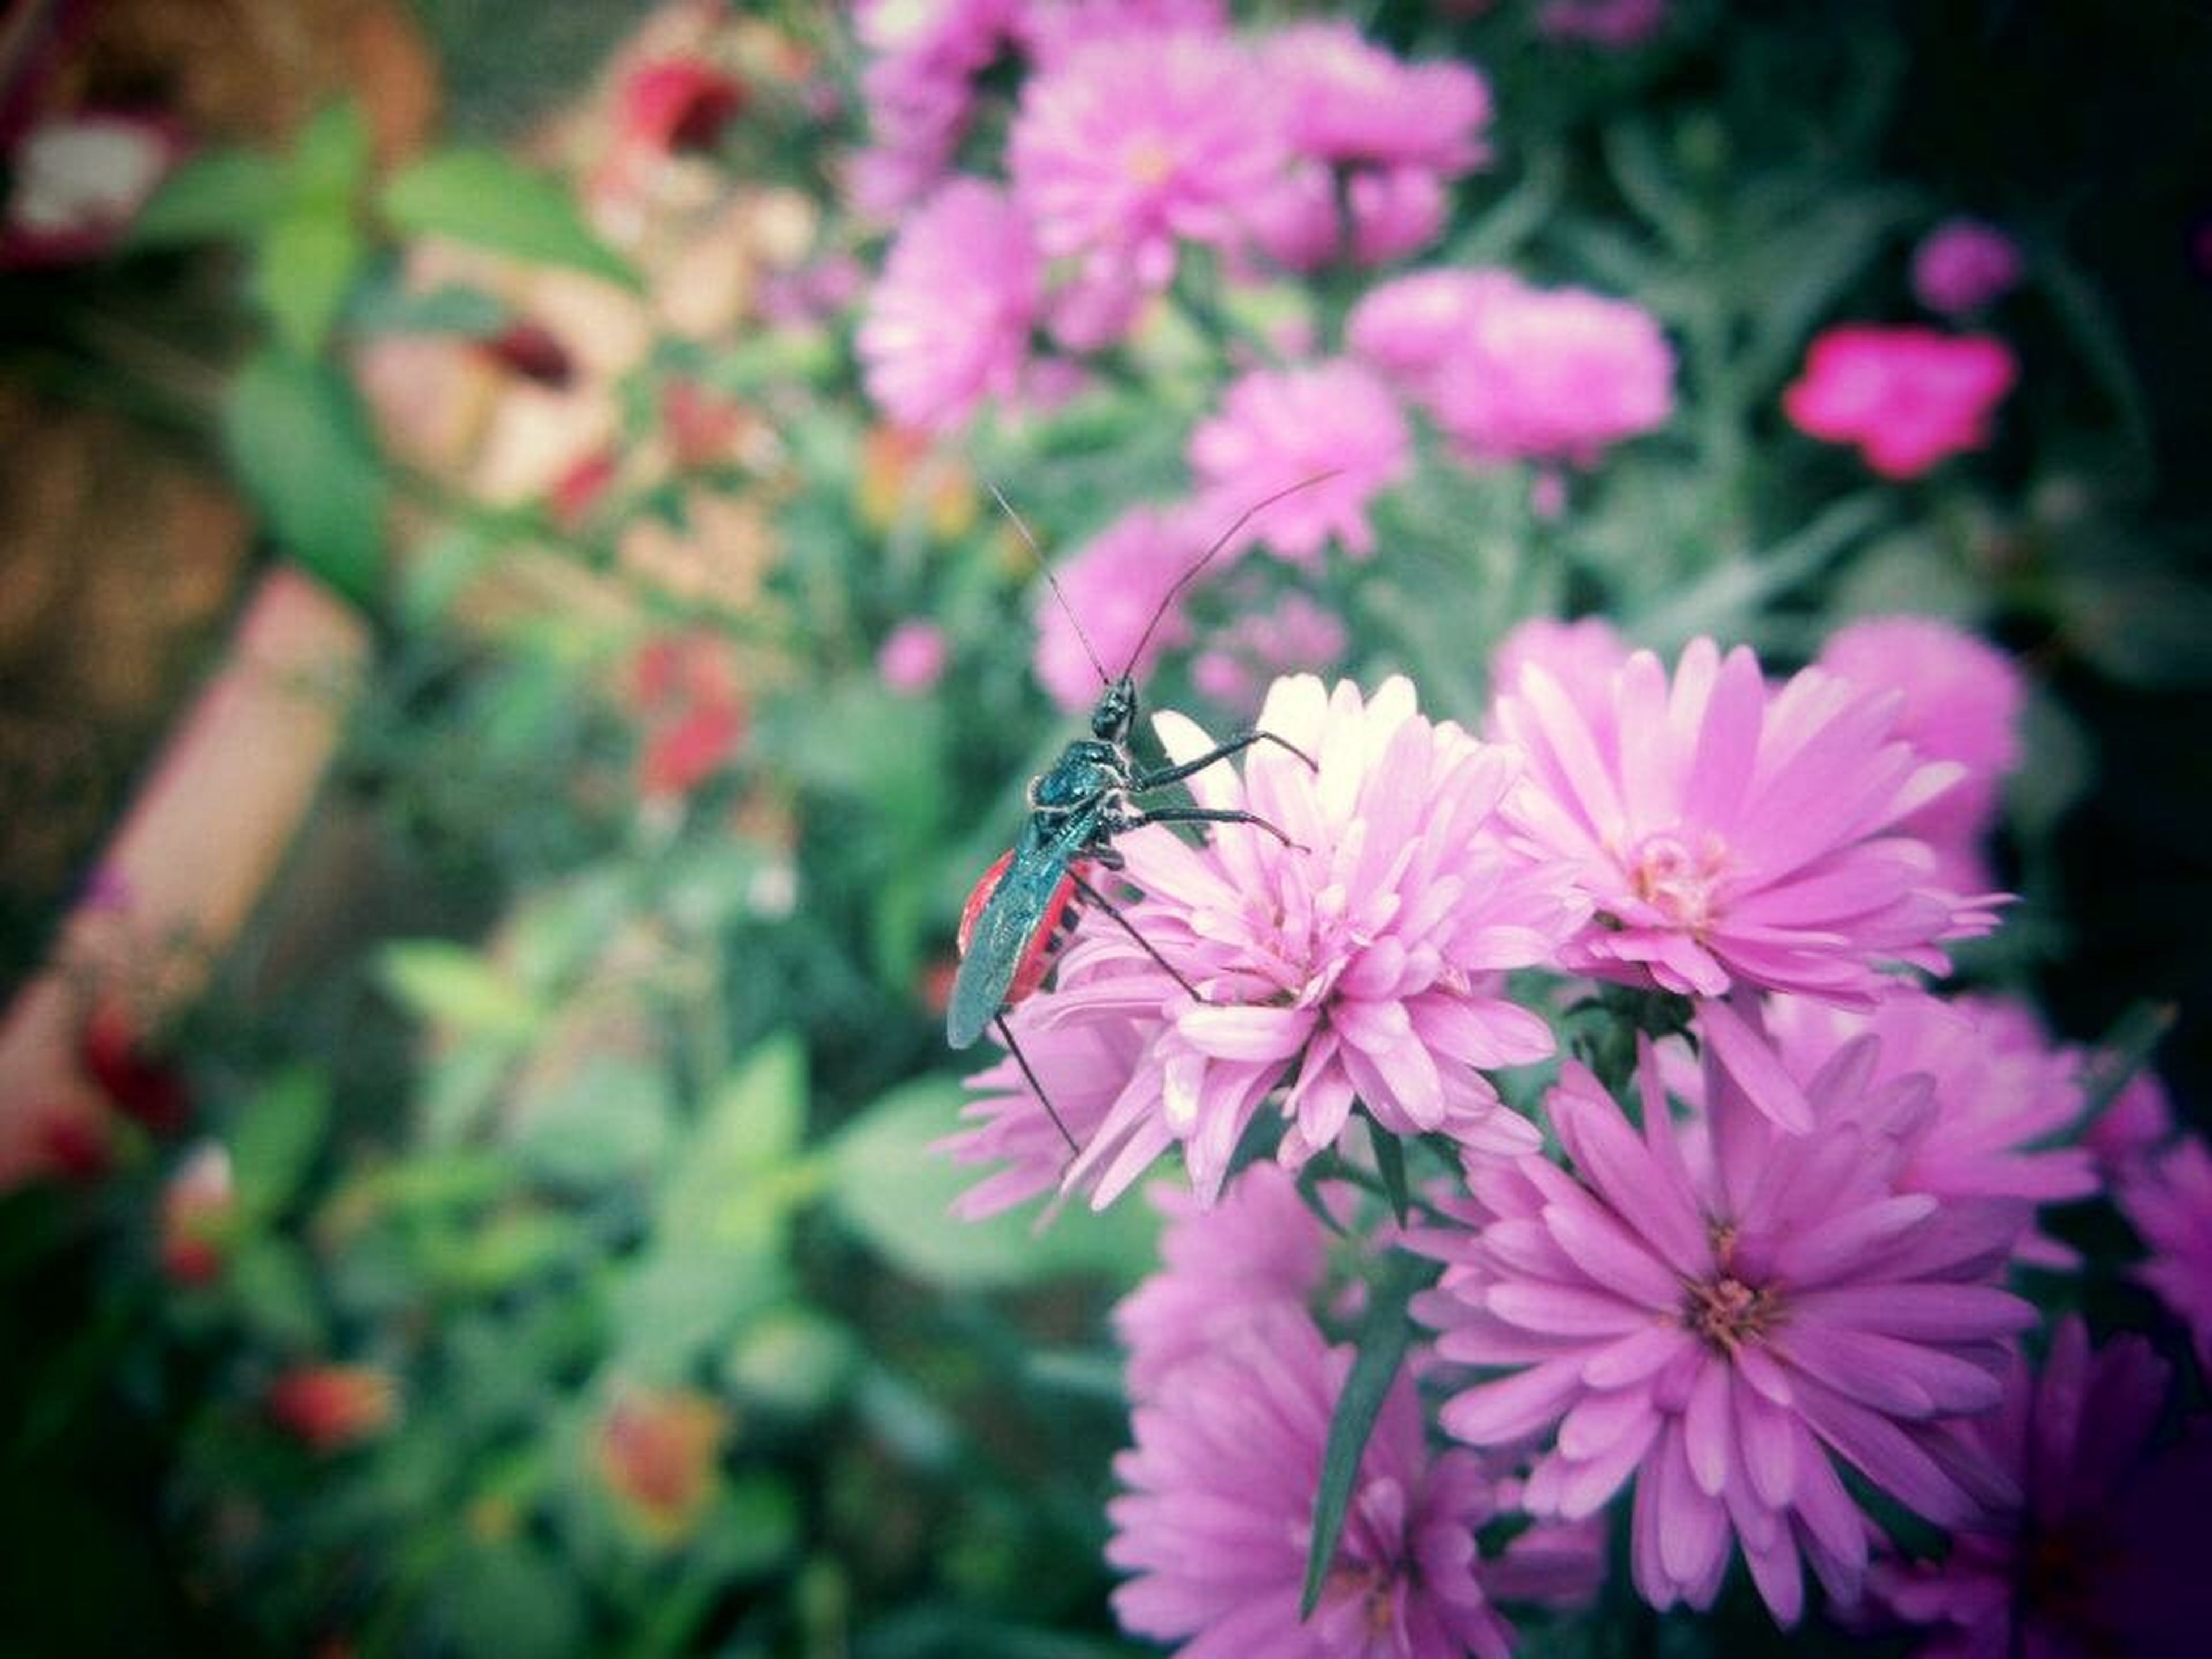 flower, freshness, petal, fragility, growth, pink color, beauty in nature, flower head, insect, one animal, plant, focus on foreground, nature, blooming, animal themes, close-up, animals in the wild, wildlife, in bloom, outdoors